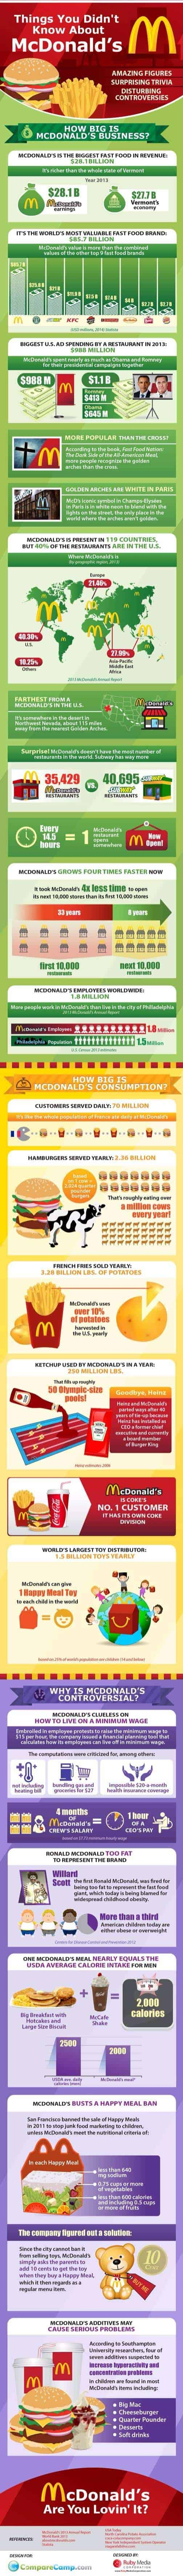 Things you didn't know about mcdonalds